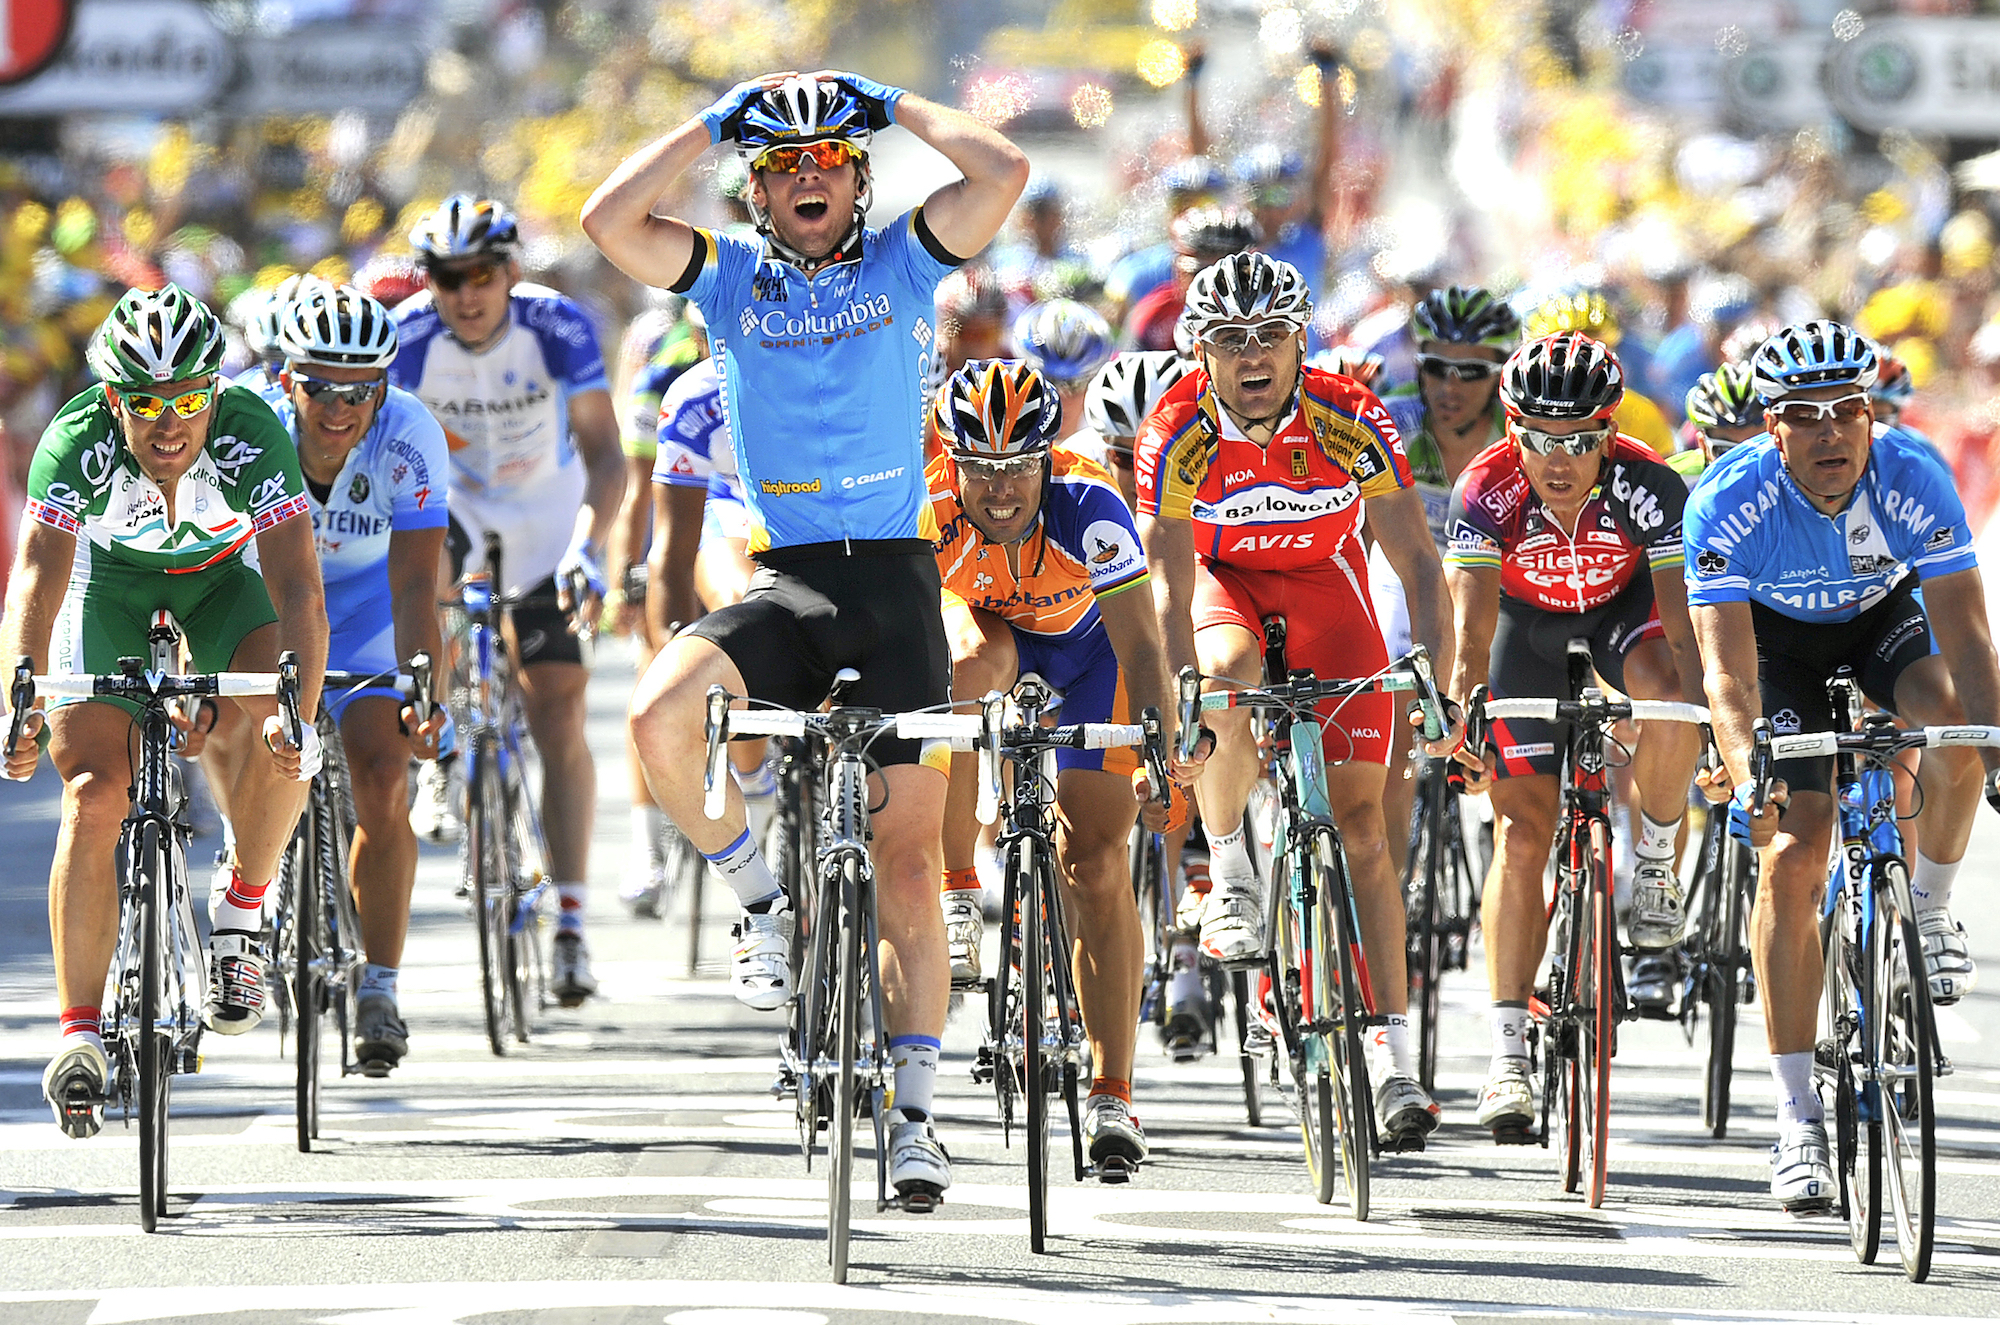 Mark Cavendish wins his first Tour de France stage in 2008